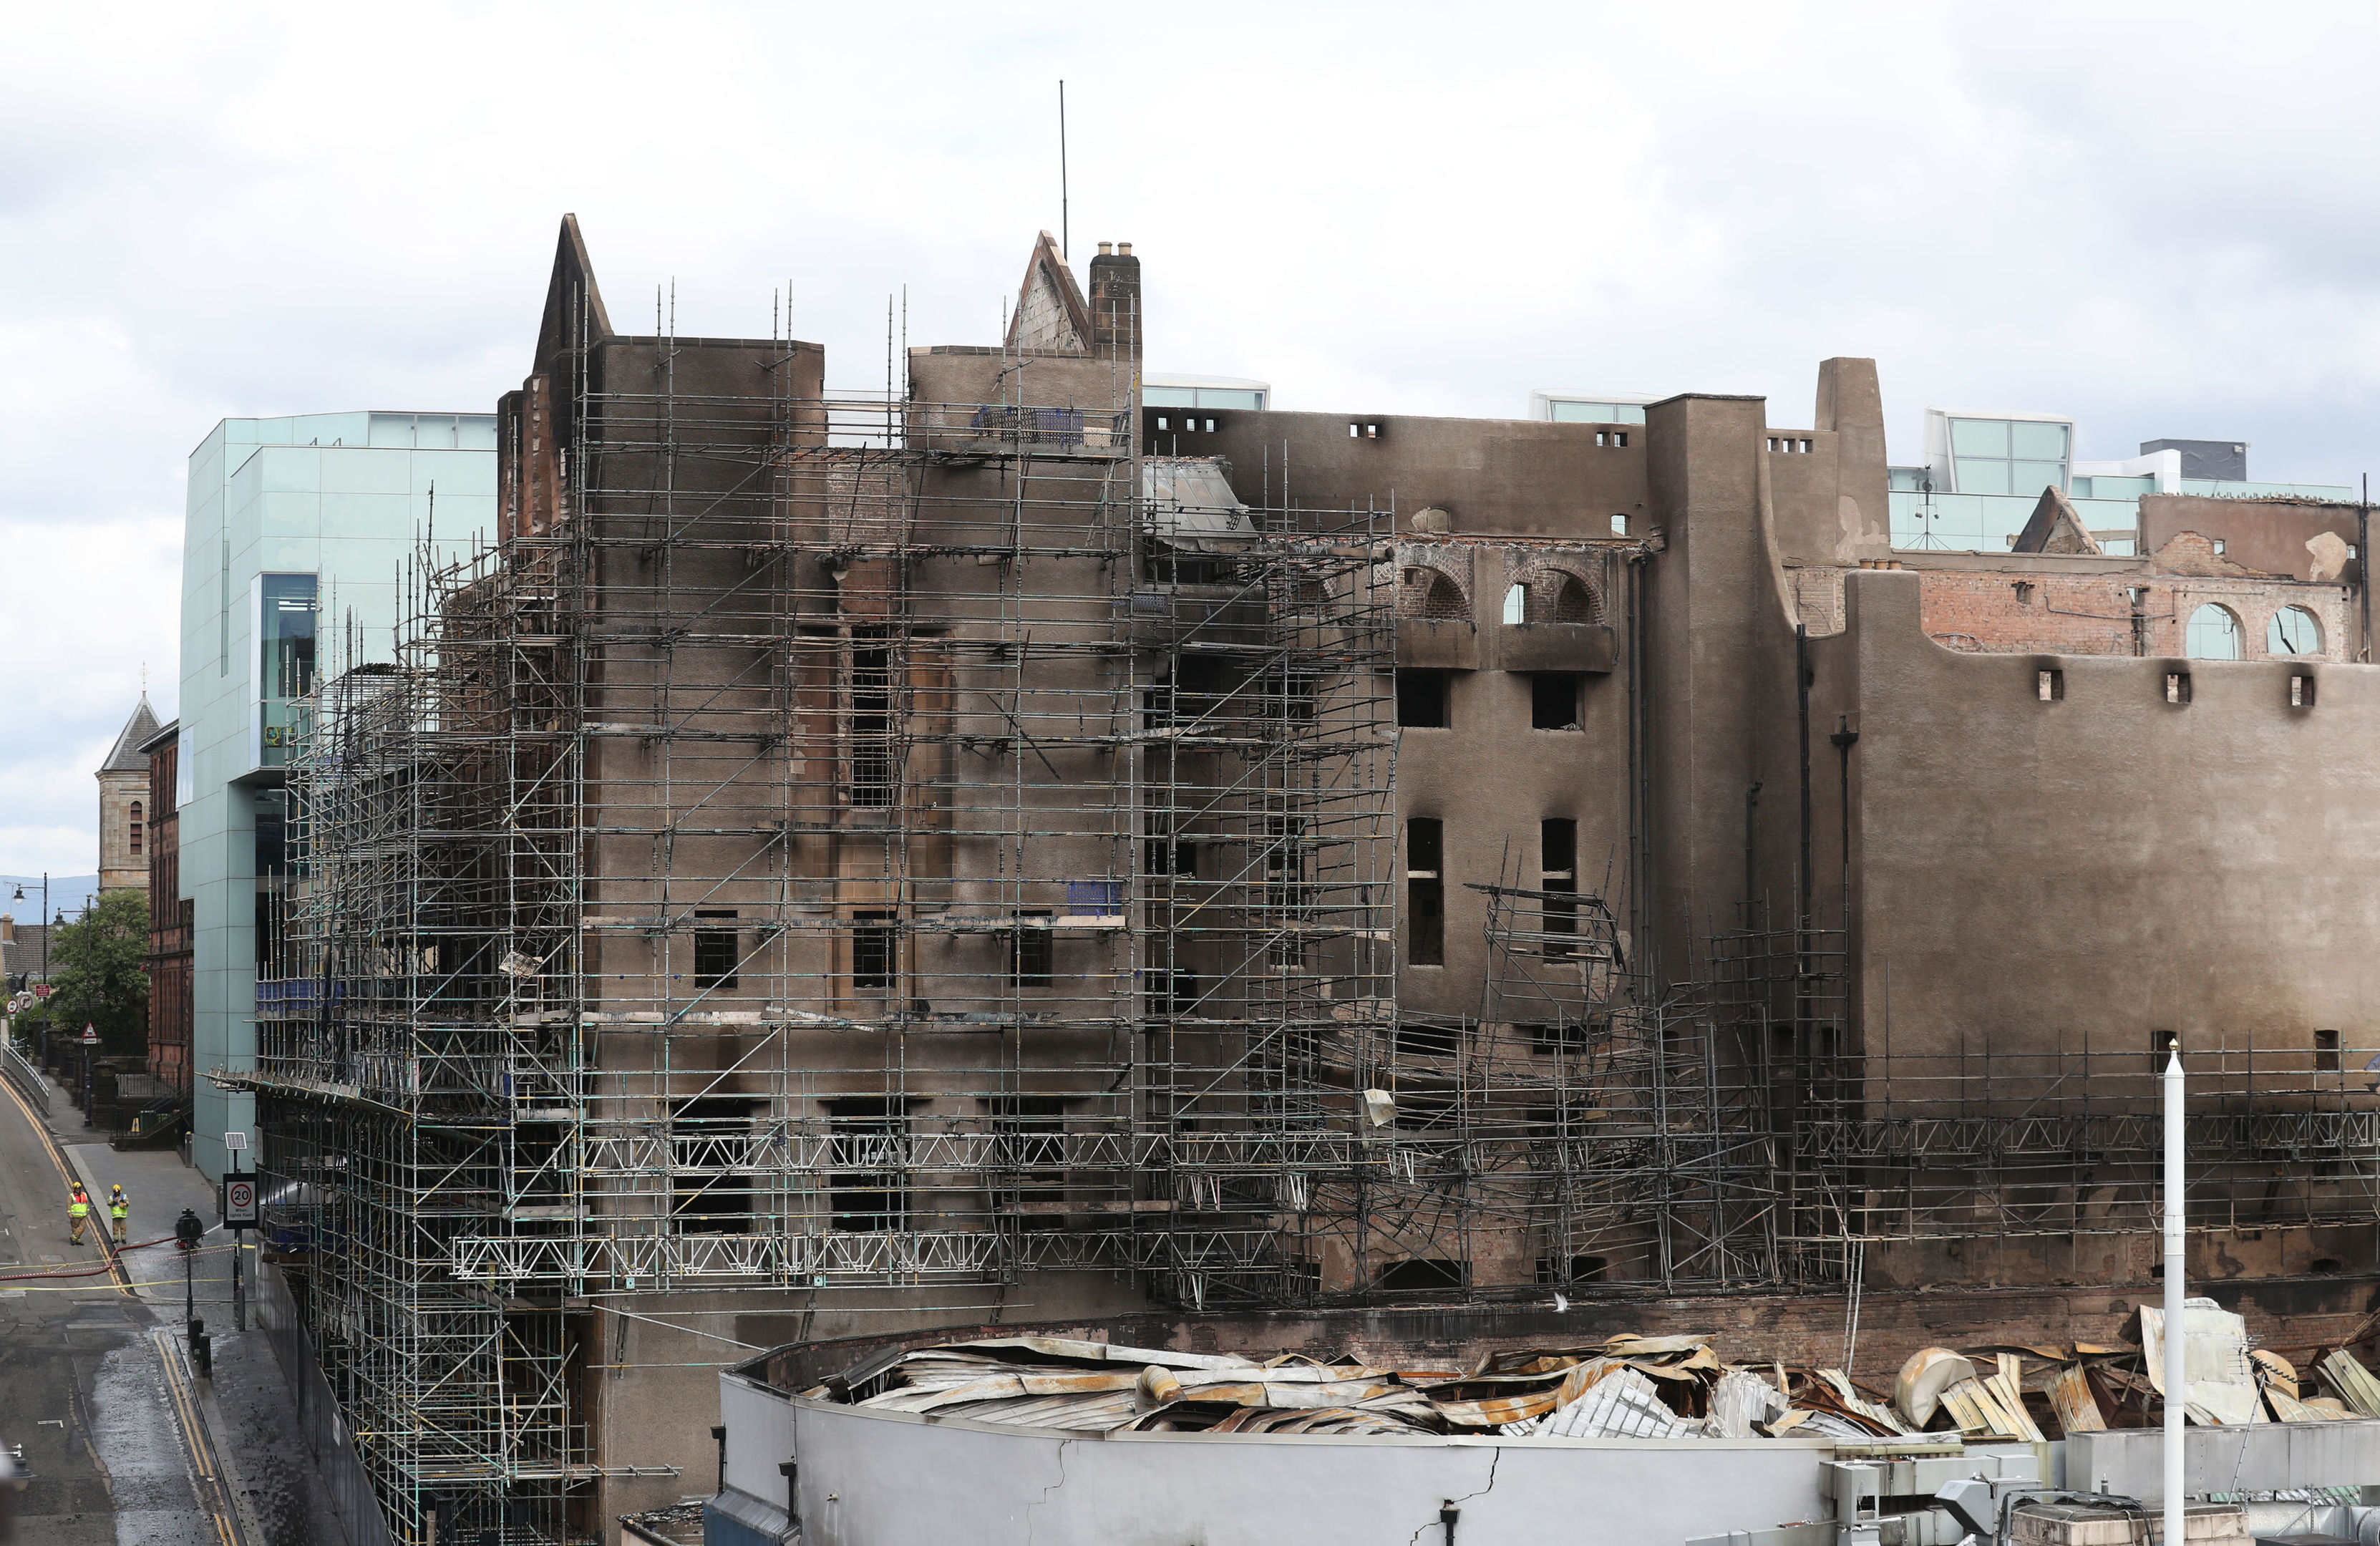 The Glasgow School of Art in the historic Mackintosh Building was destroyed in a blaze